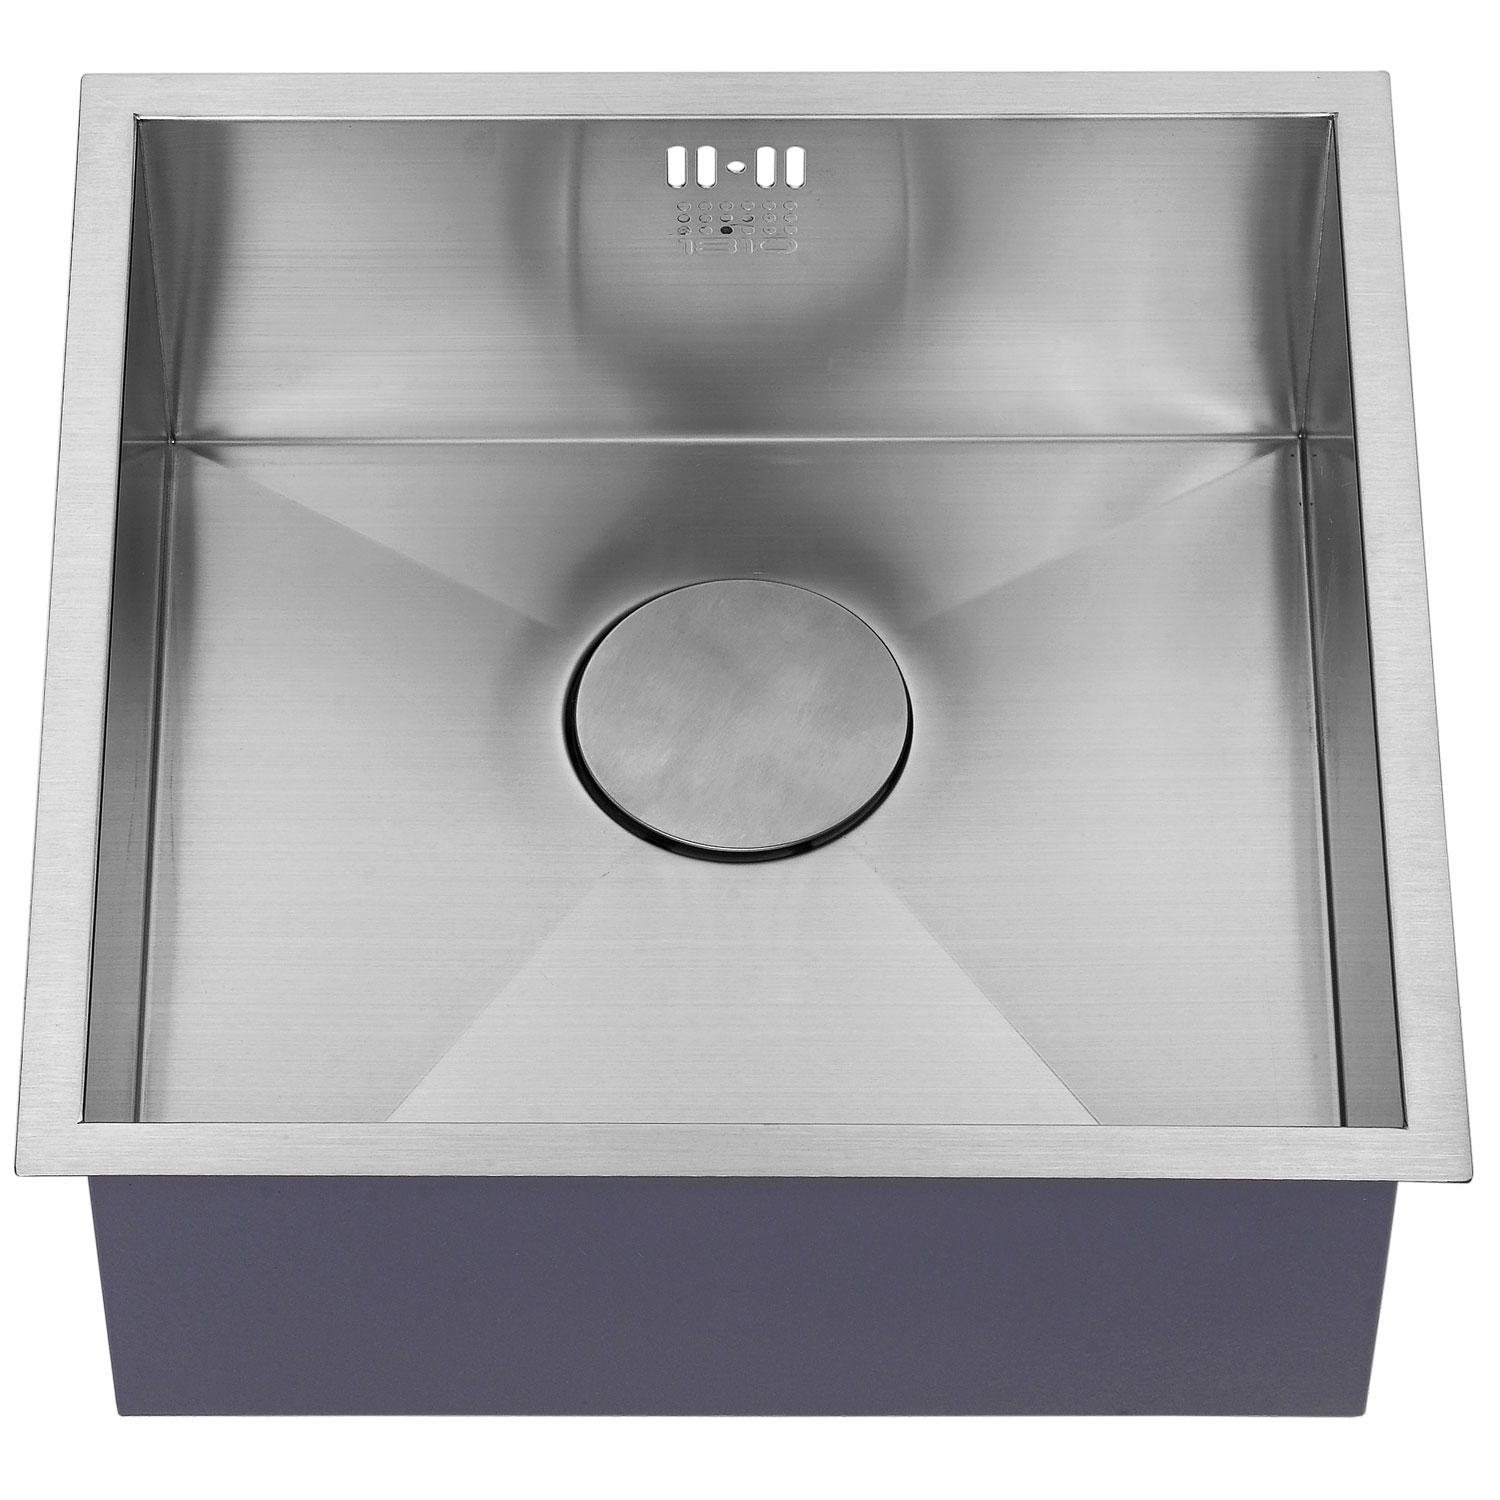 The 1810 Company Zenuno 400U 1.0 Bowl Kitchen Sink - Stainless Steel-1